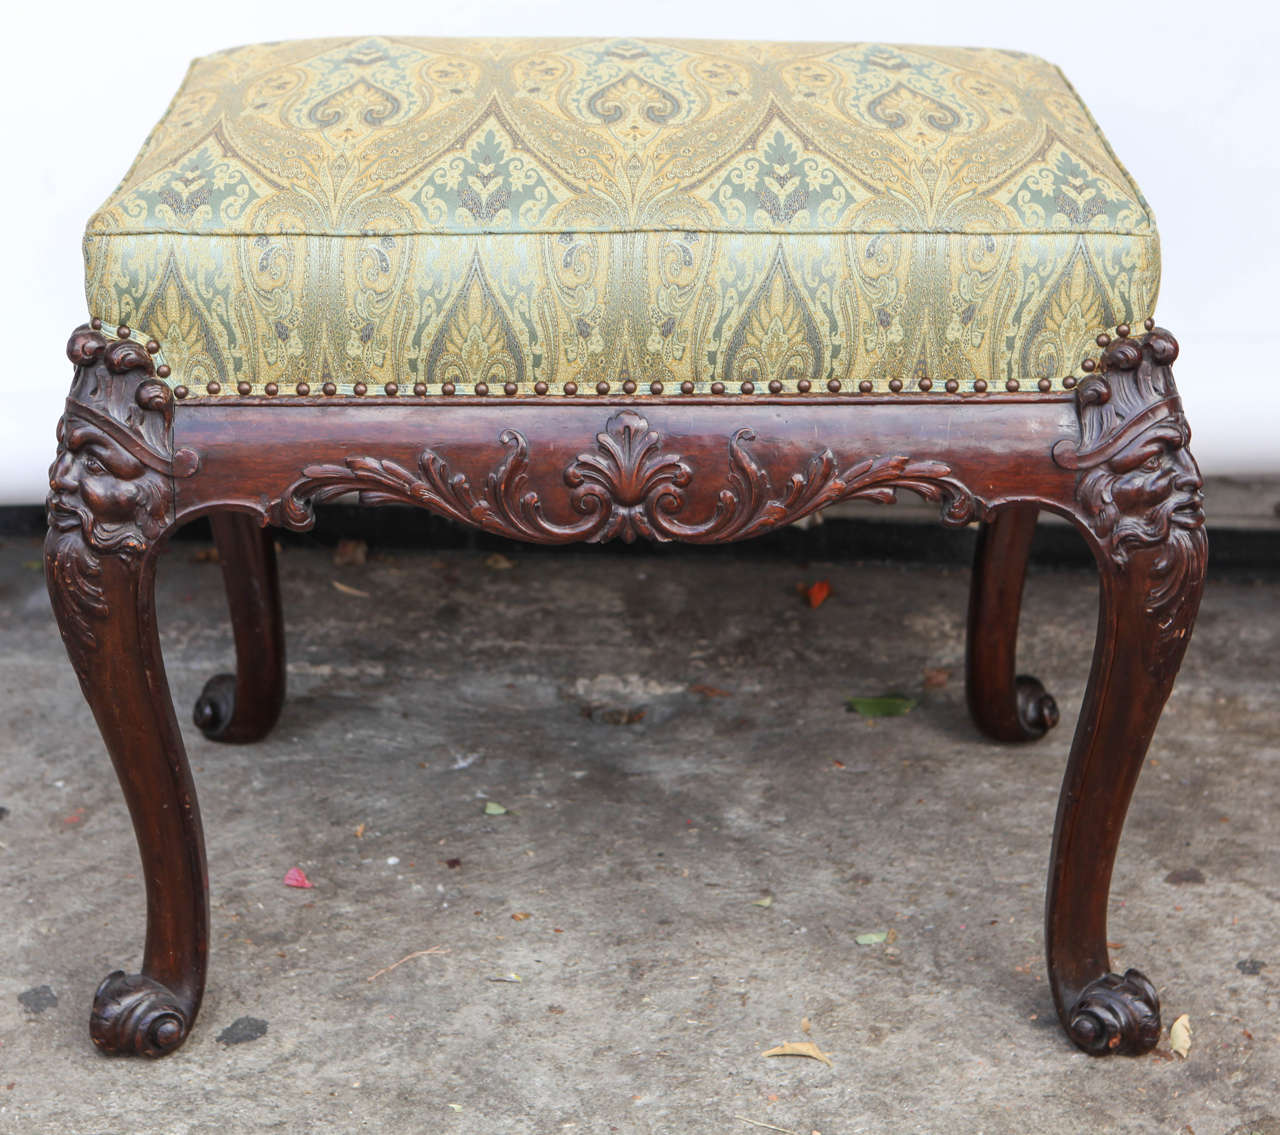 19th c. English carved Mahogany Bench or Stool with Green Silk Paisley Fabric.  The fine carving includes a face motif and scroll feet with nail head detail.